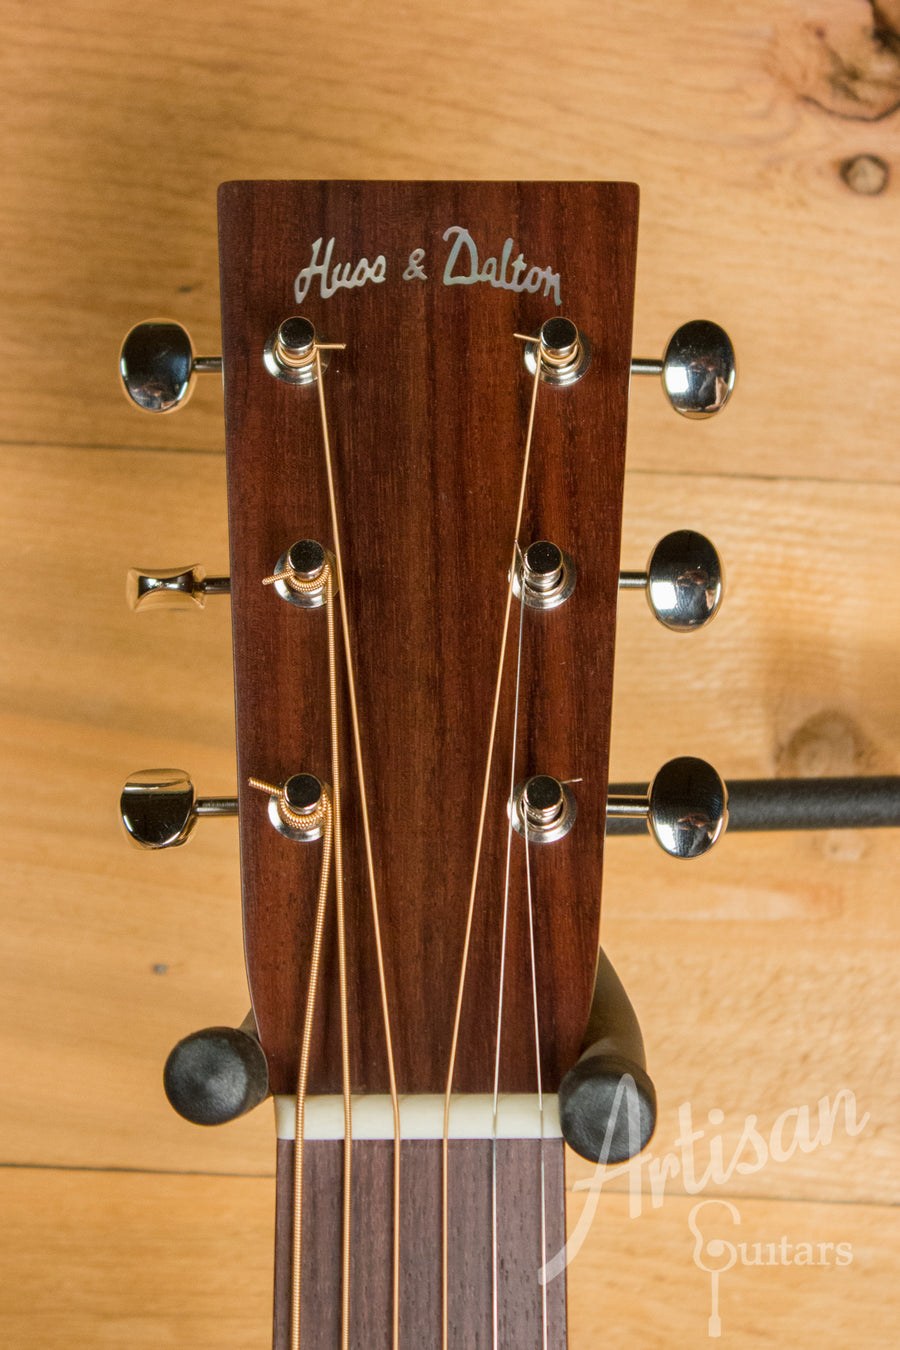 Huss and Dalton Road Edition Dreadnought - Sitka Spruce and Indian Rosewood ID-10651 - Artisan Guitars